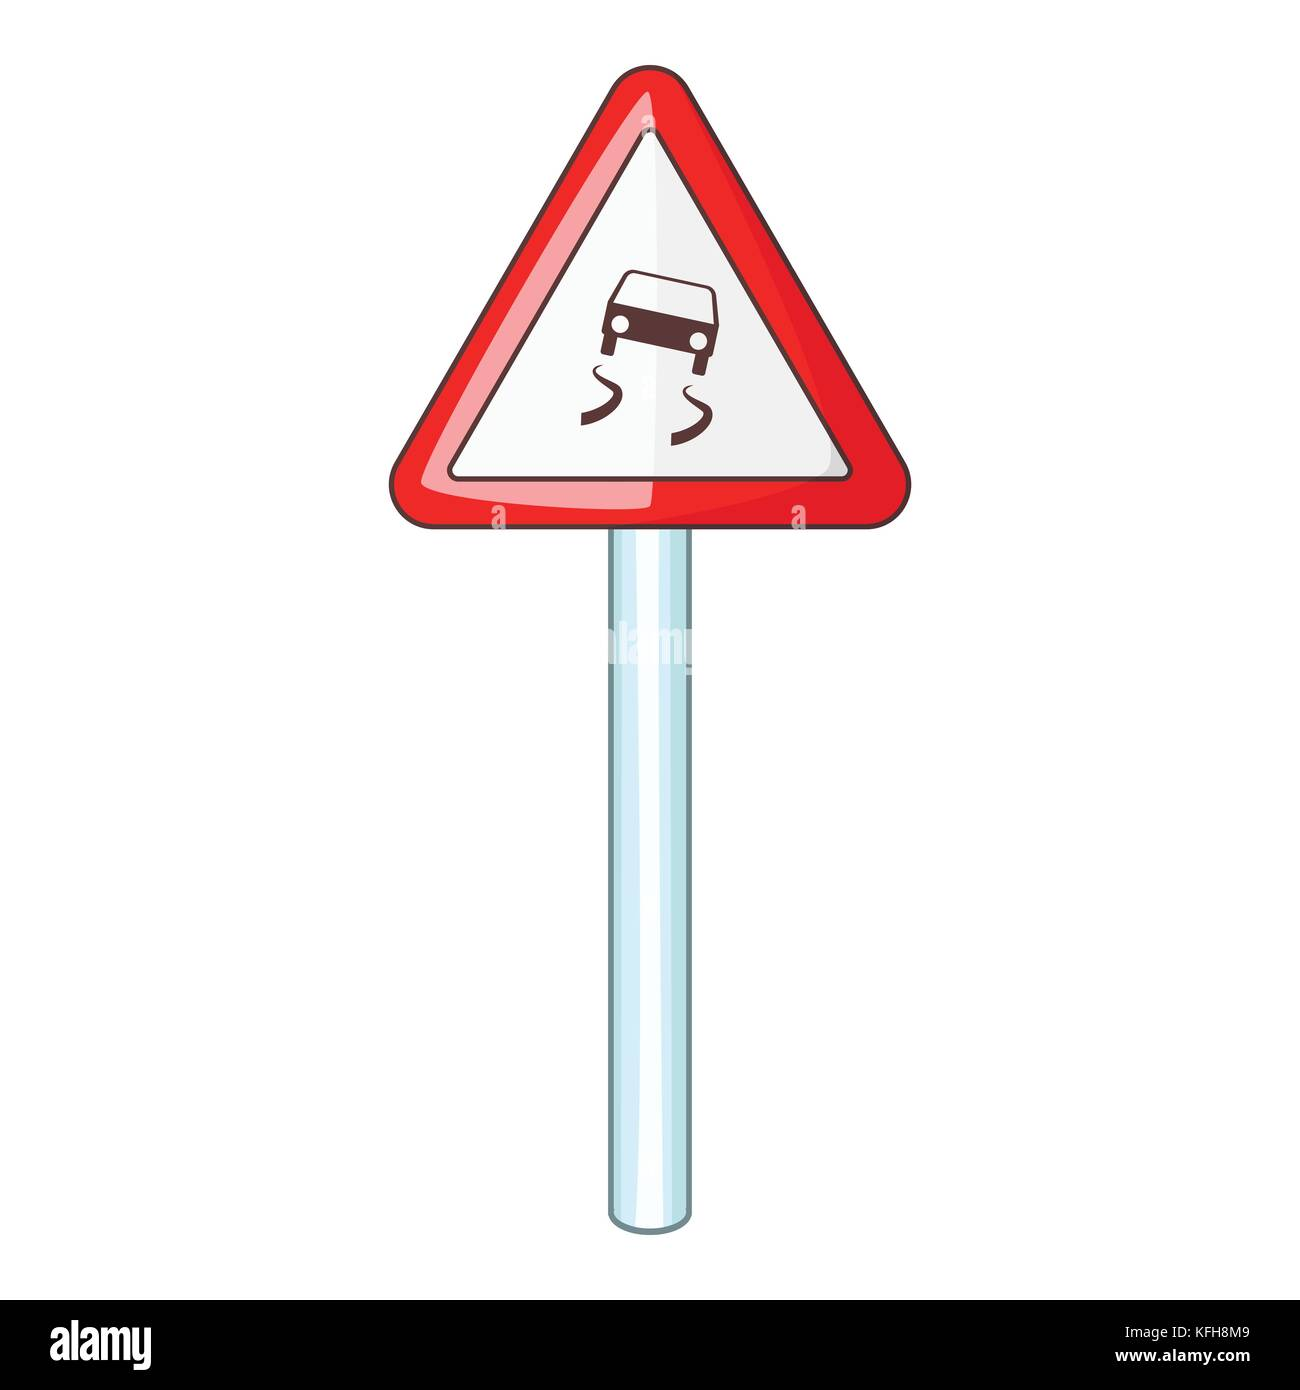 Slippery when wet road sign icon, cartoon style - Stock Image